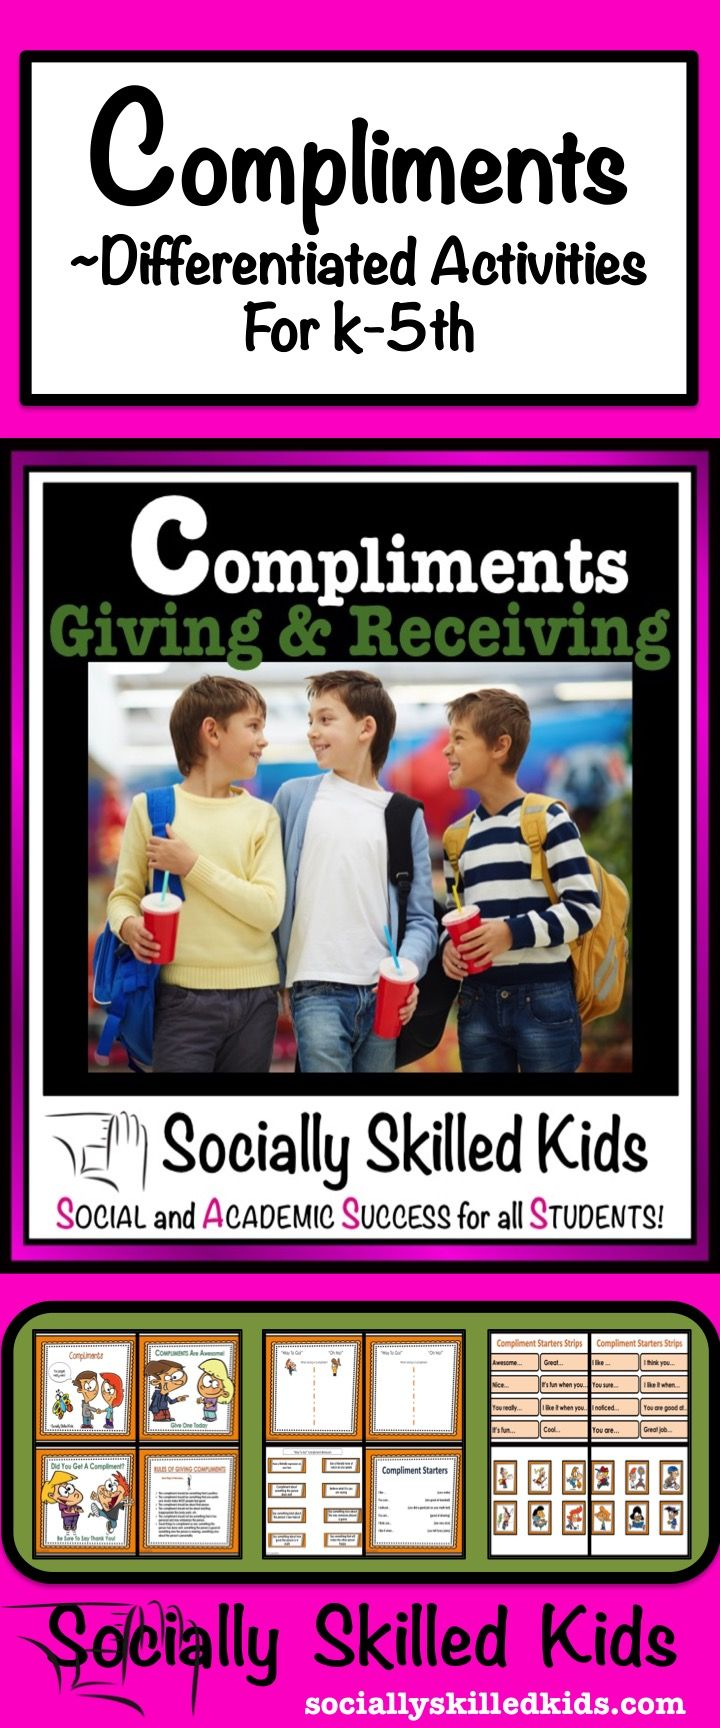 Compliments fun and differentiated activities to help